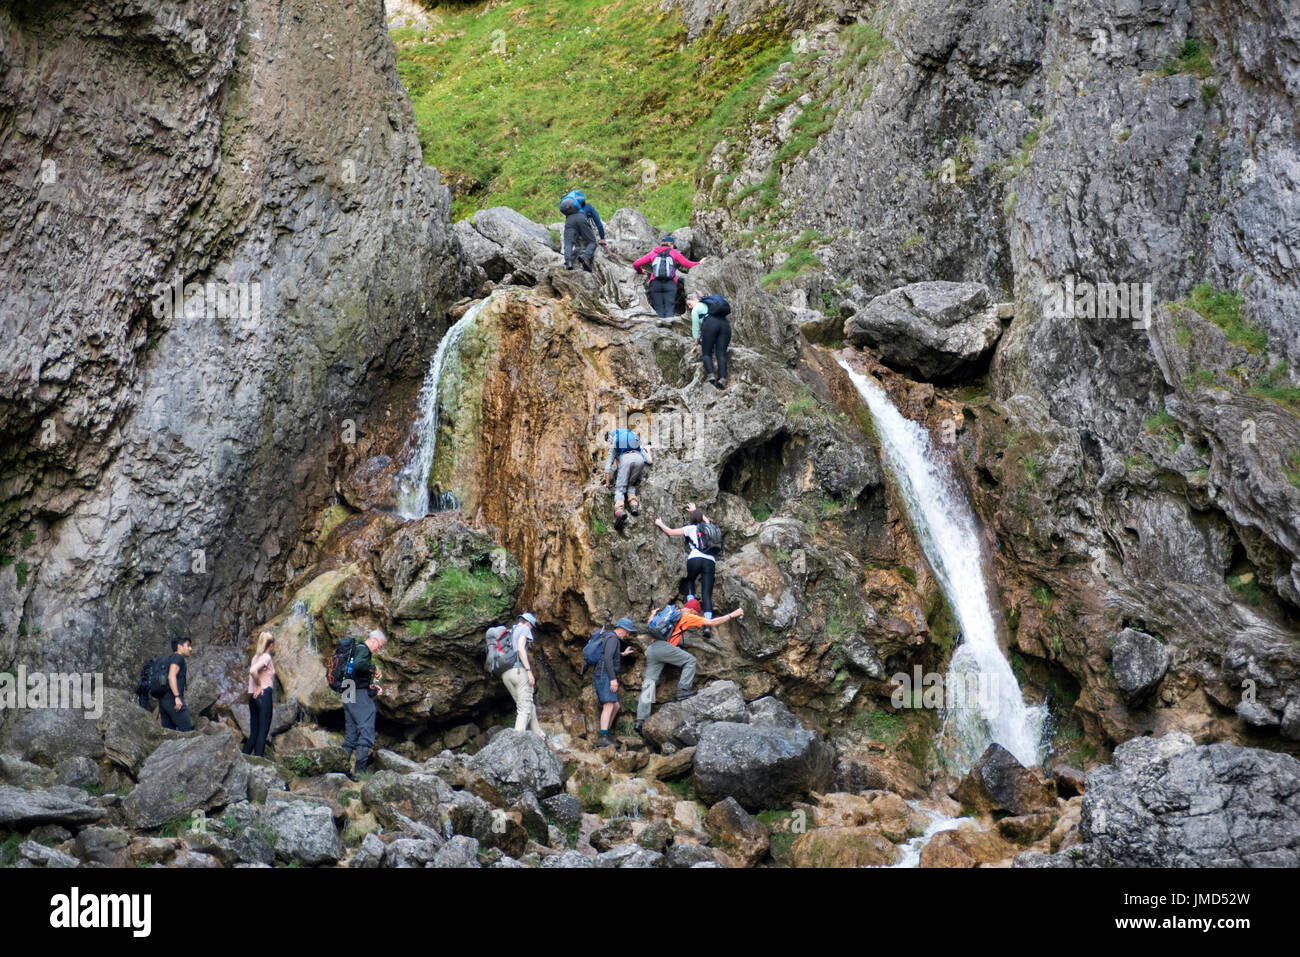 Walkers clamber up the footpath over the waterfalls at Gordale Scar, Malham, Yorkshire Dales National Park, UK - Stock Image